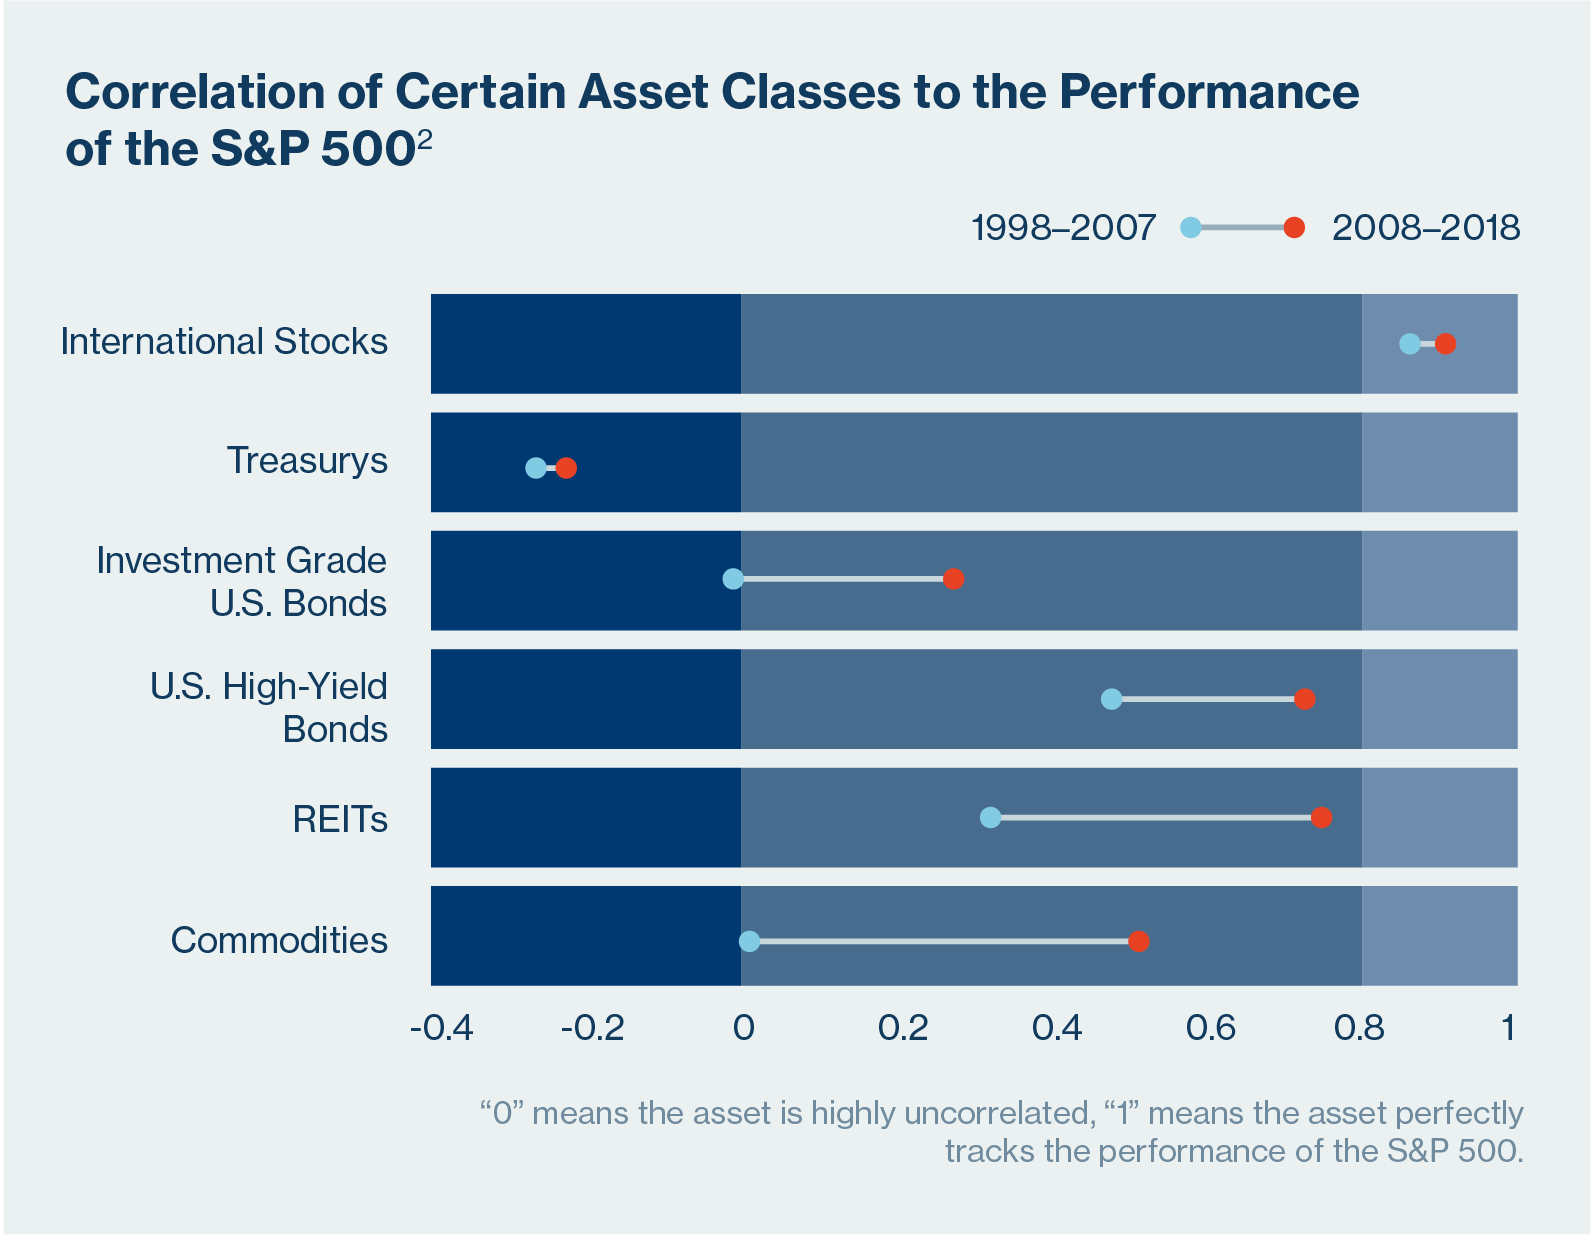 Correlation chart of major asset classes to the S&P 500